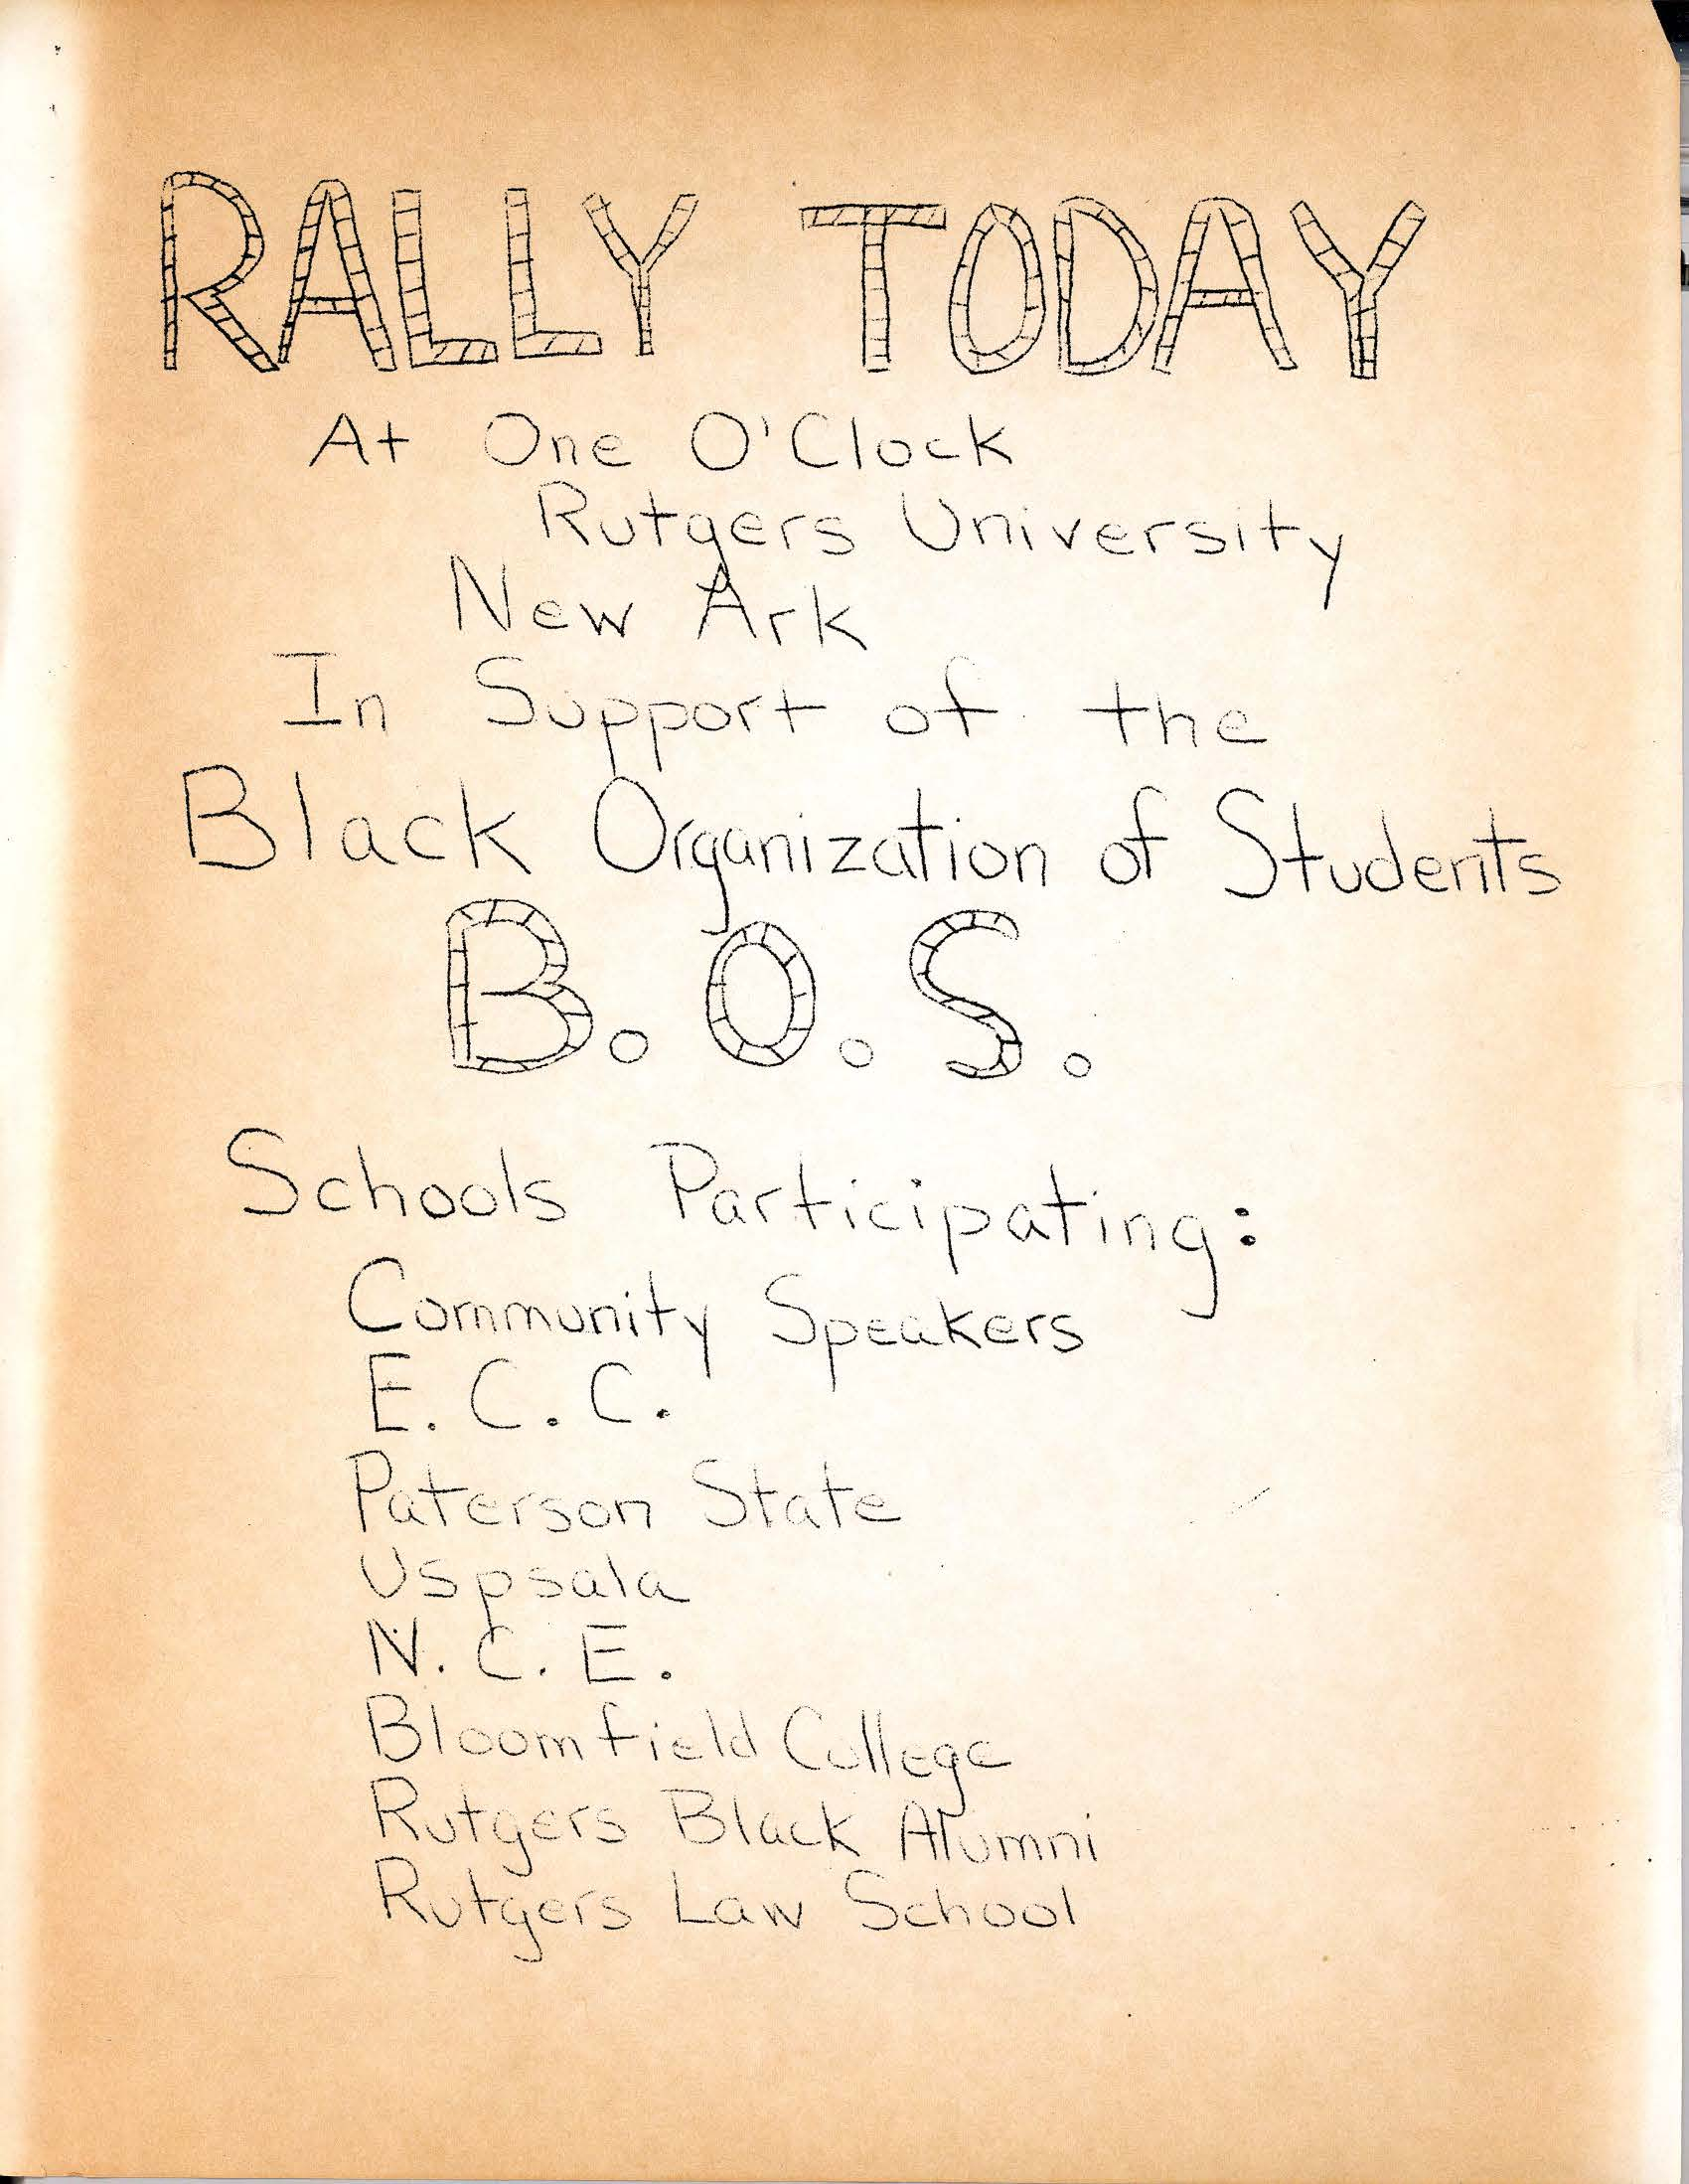 Flyer for BOS Rally